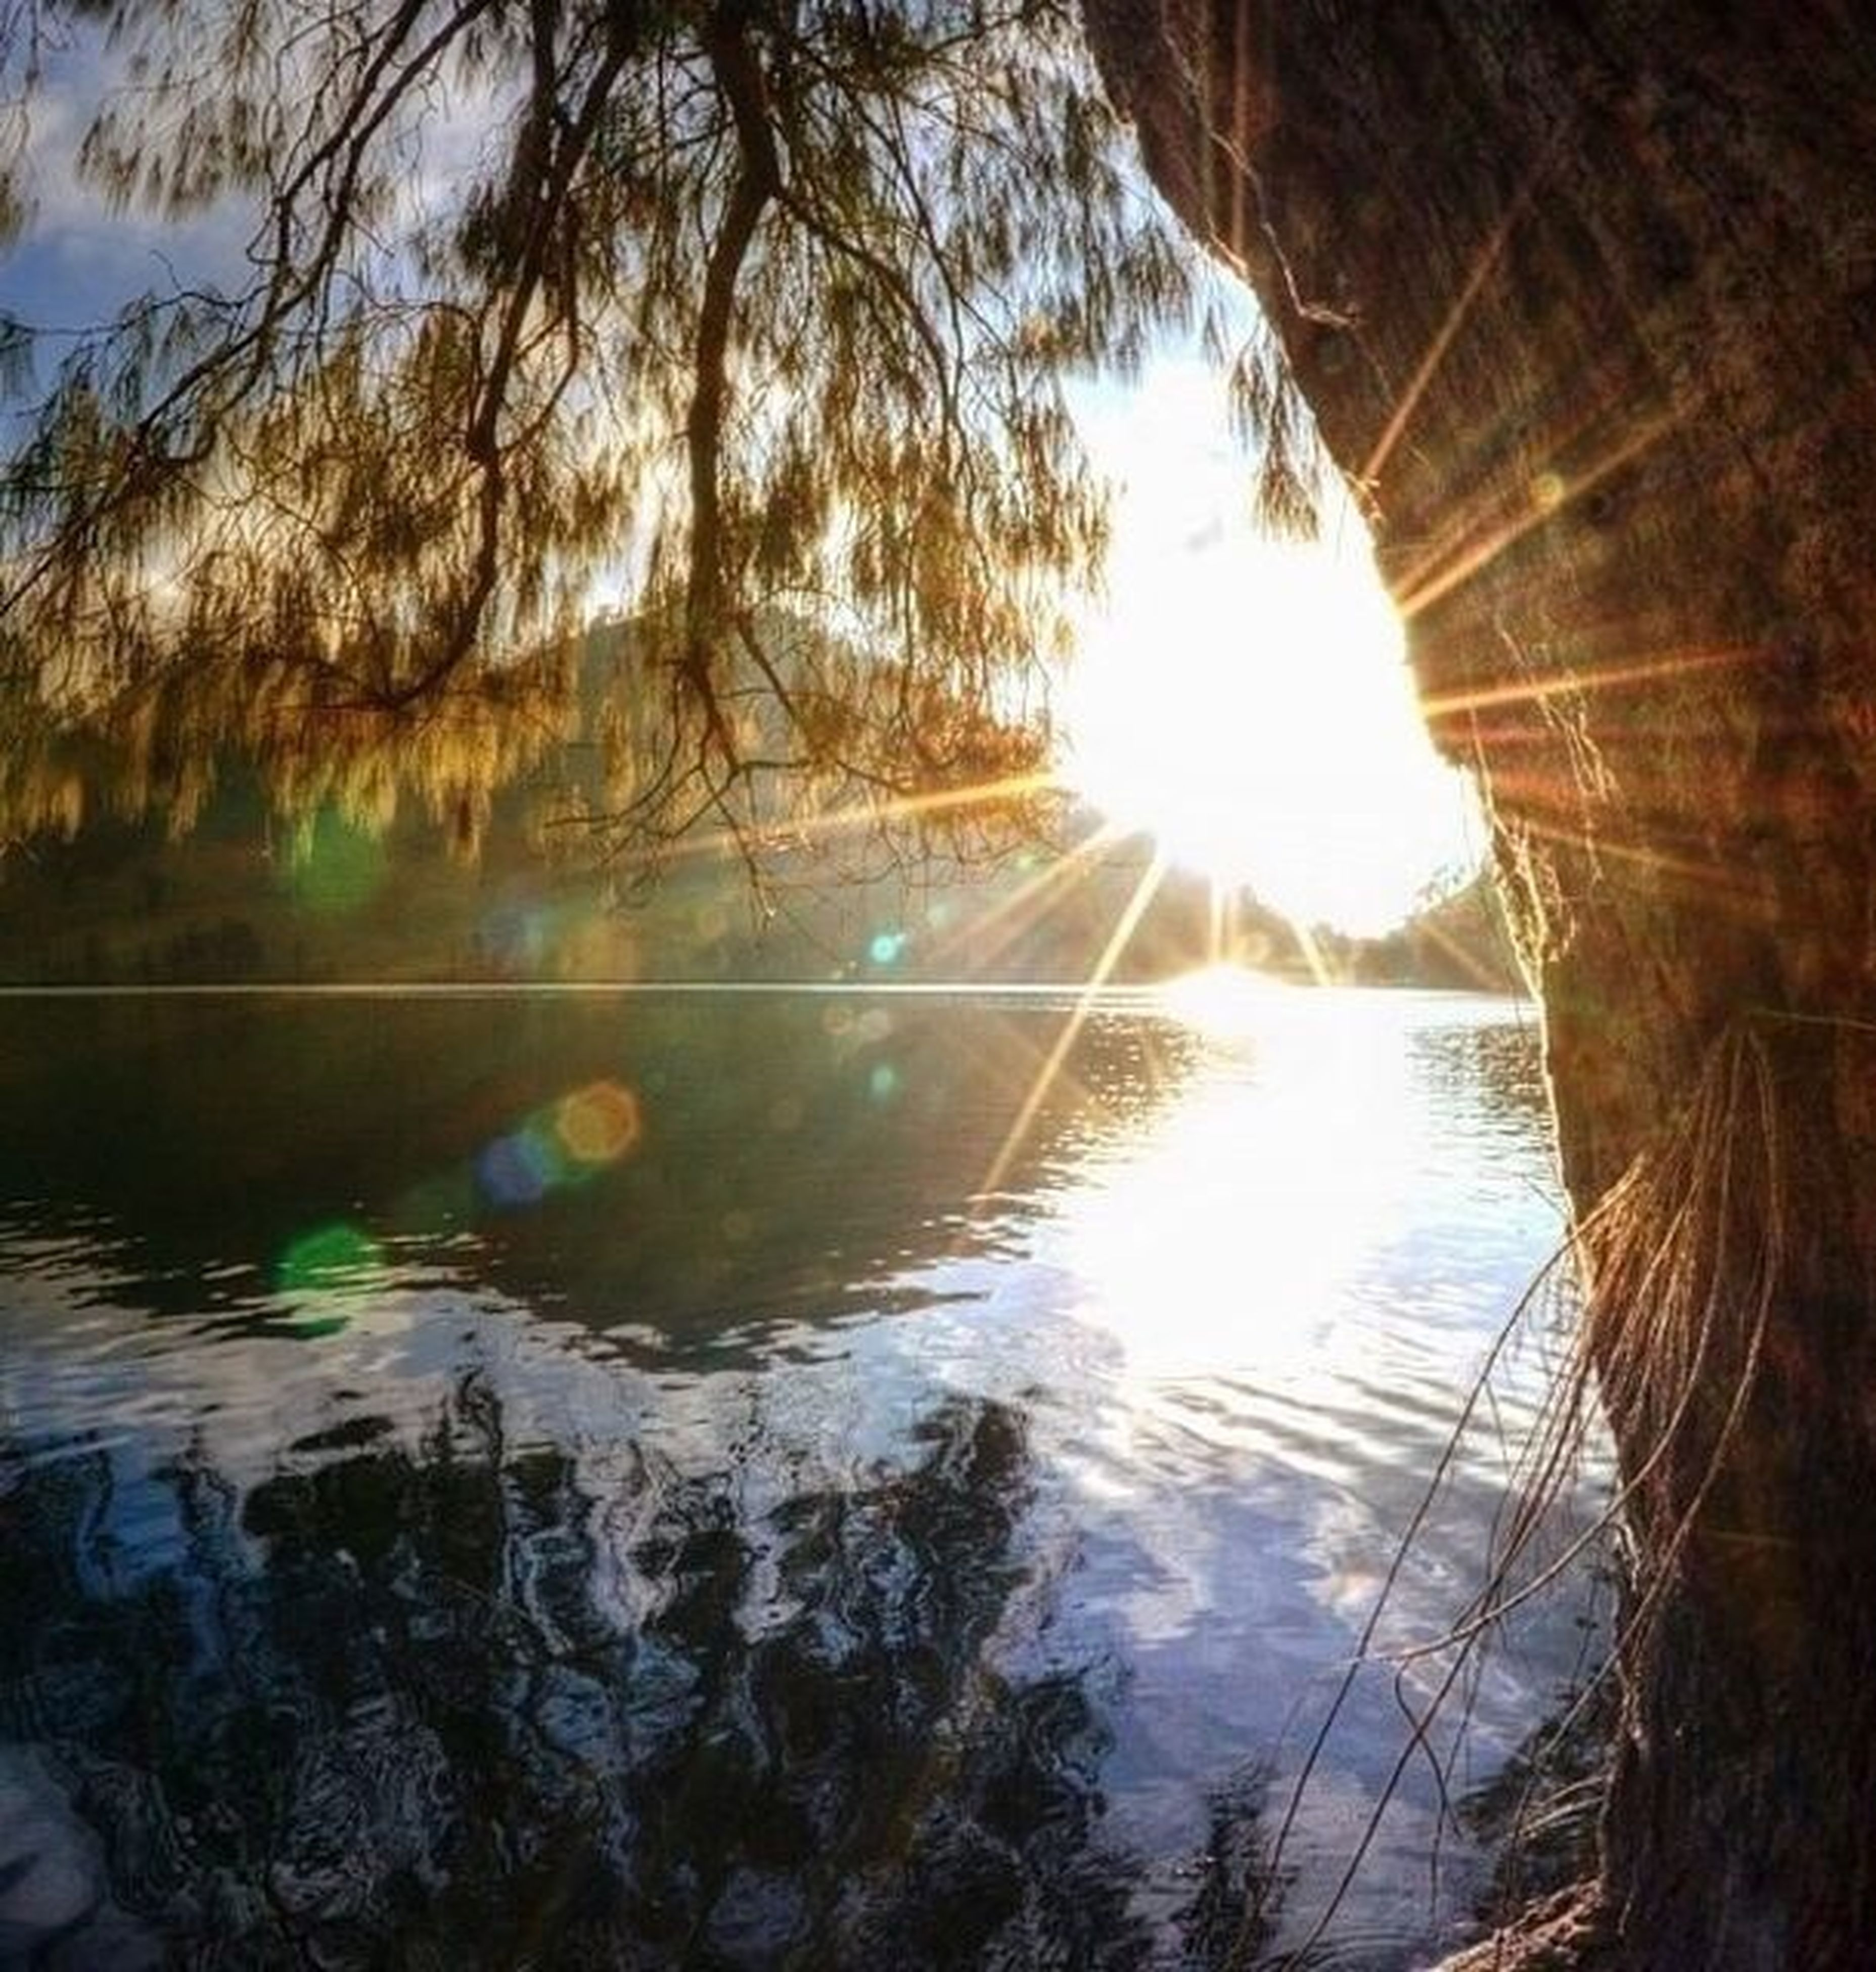 water, reflection, lake, tranquility, tranquil scene, tree, sun, beauty in nature, scenics, nature, sky, sunset, sunlight, silhouette, idyllic, river, outdoors, bare tree, lakeshore, branch